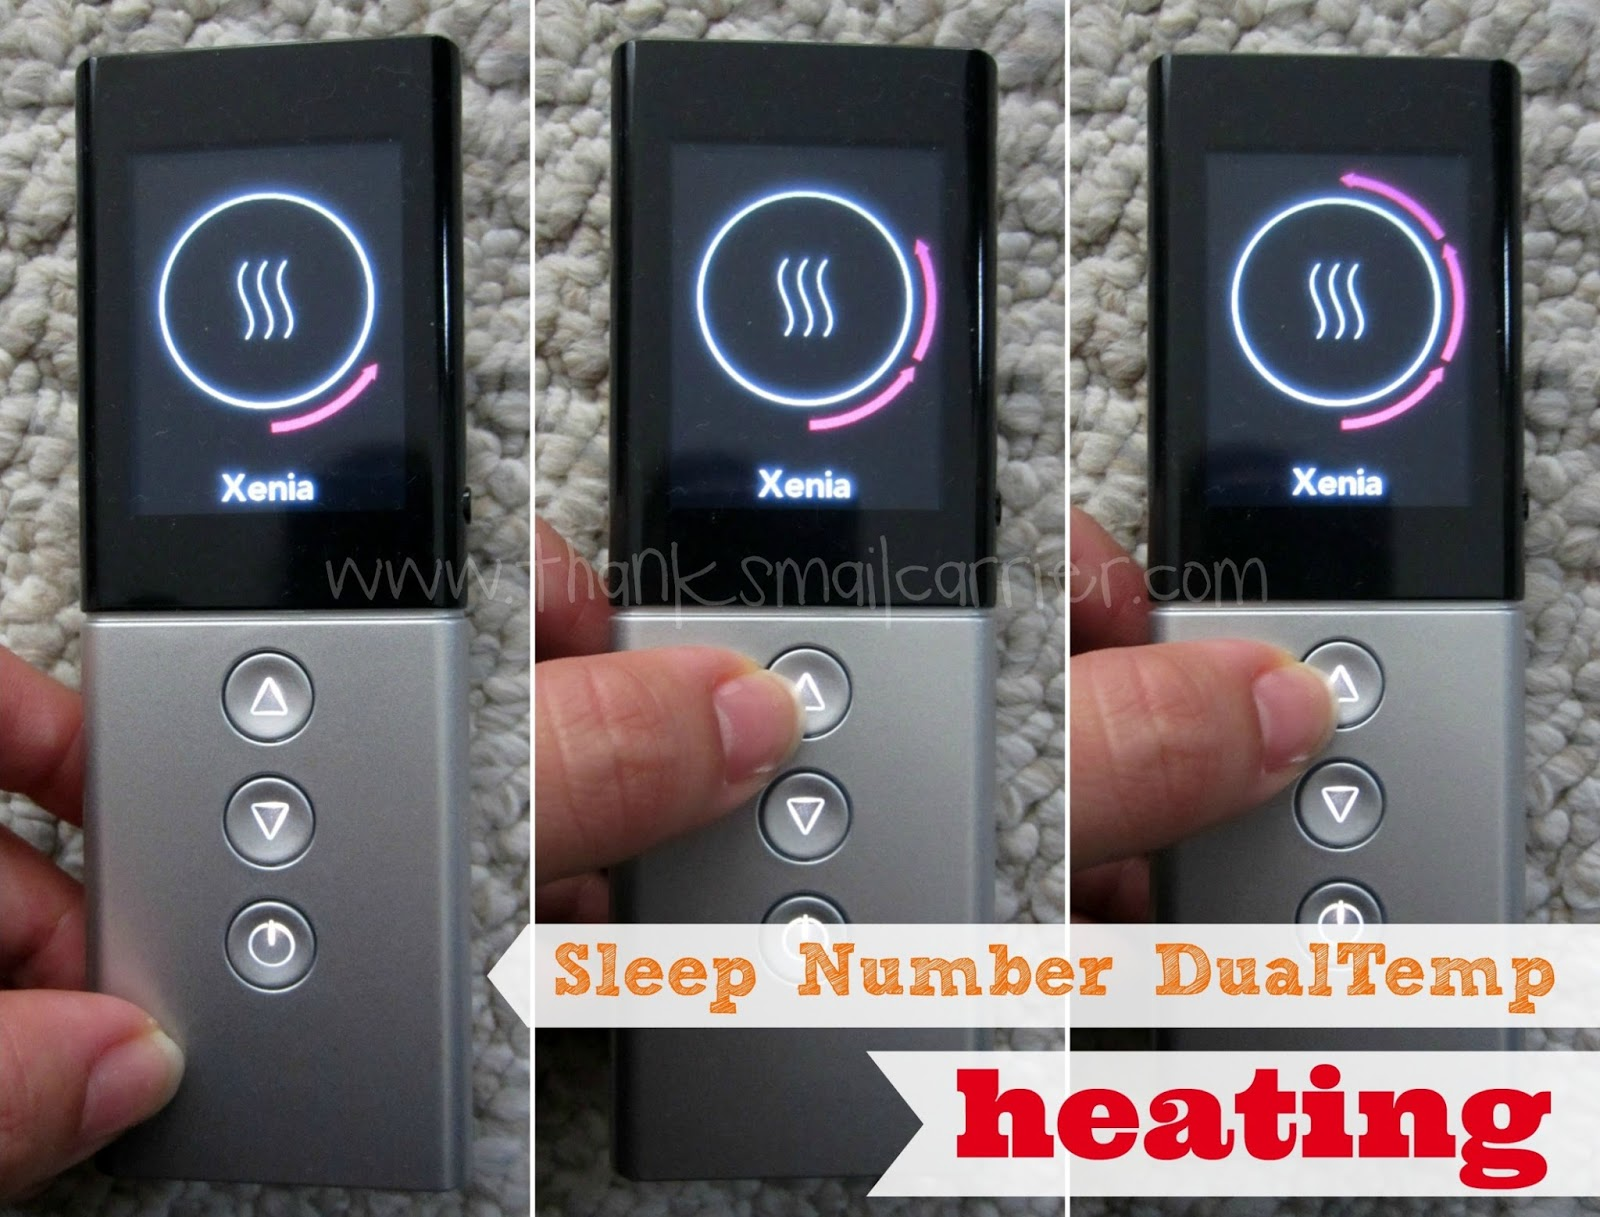 DualTemp heating